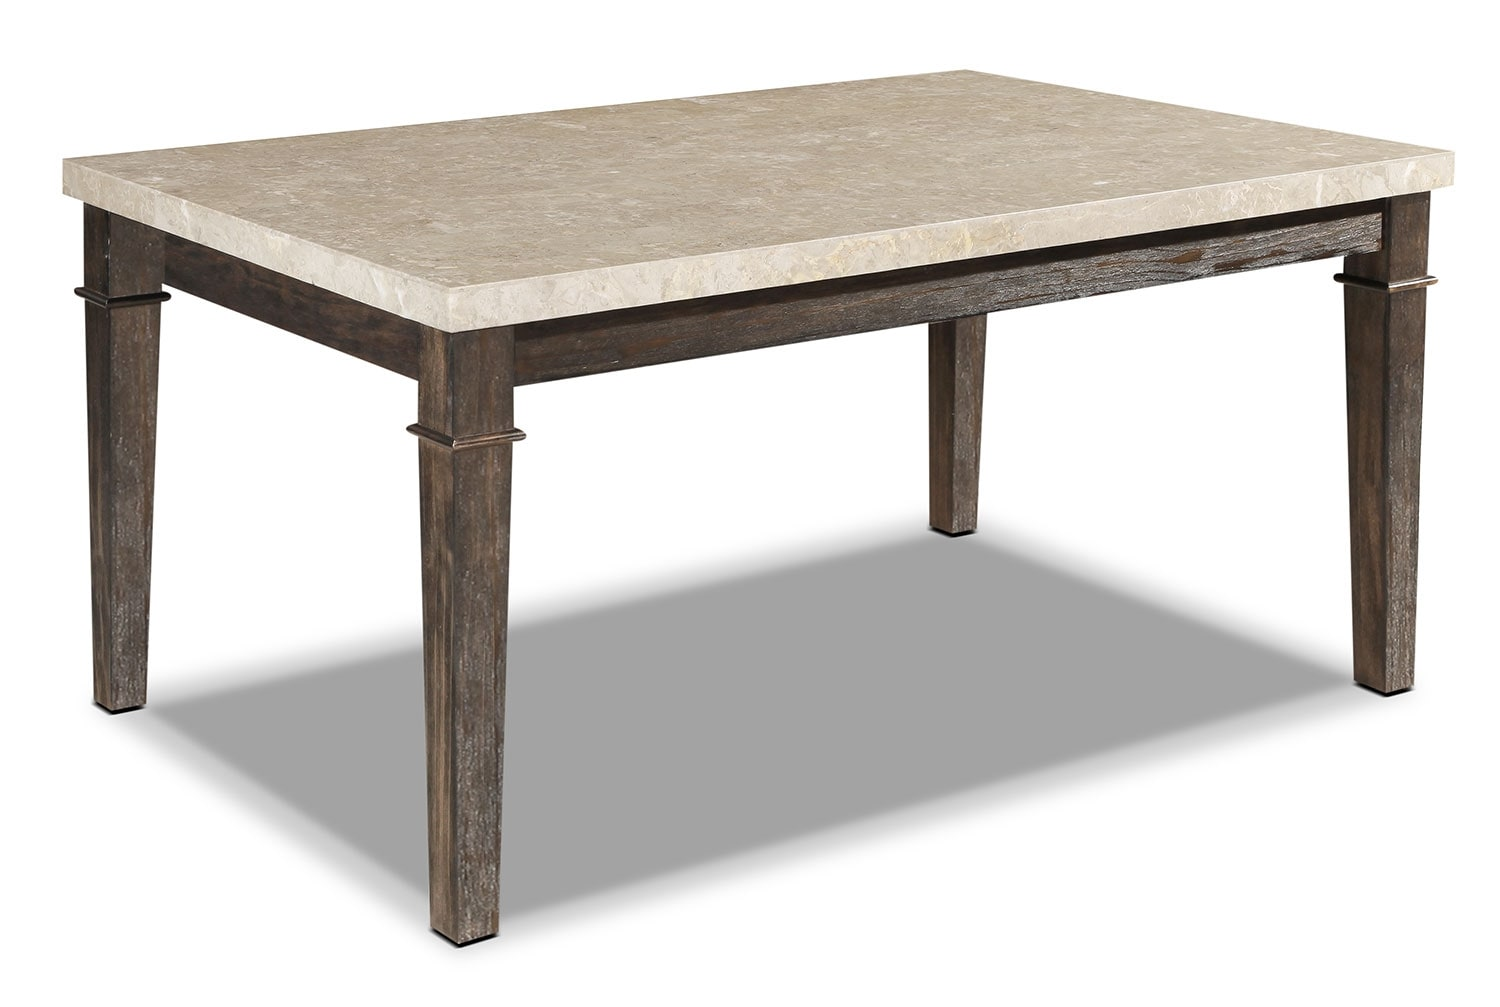 Aldo dining table the brick for On the dining table